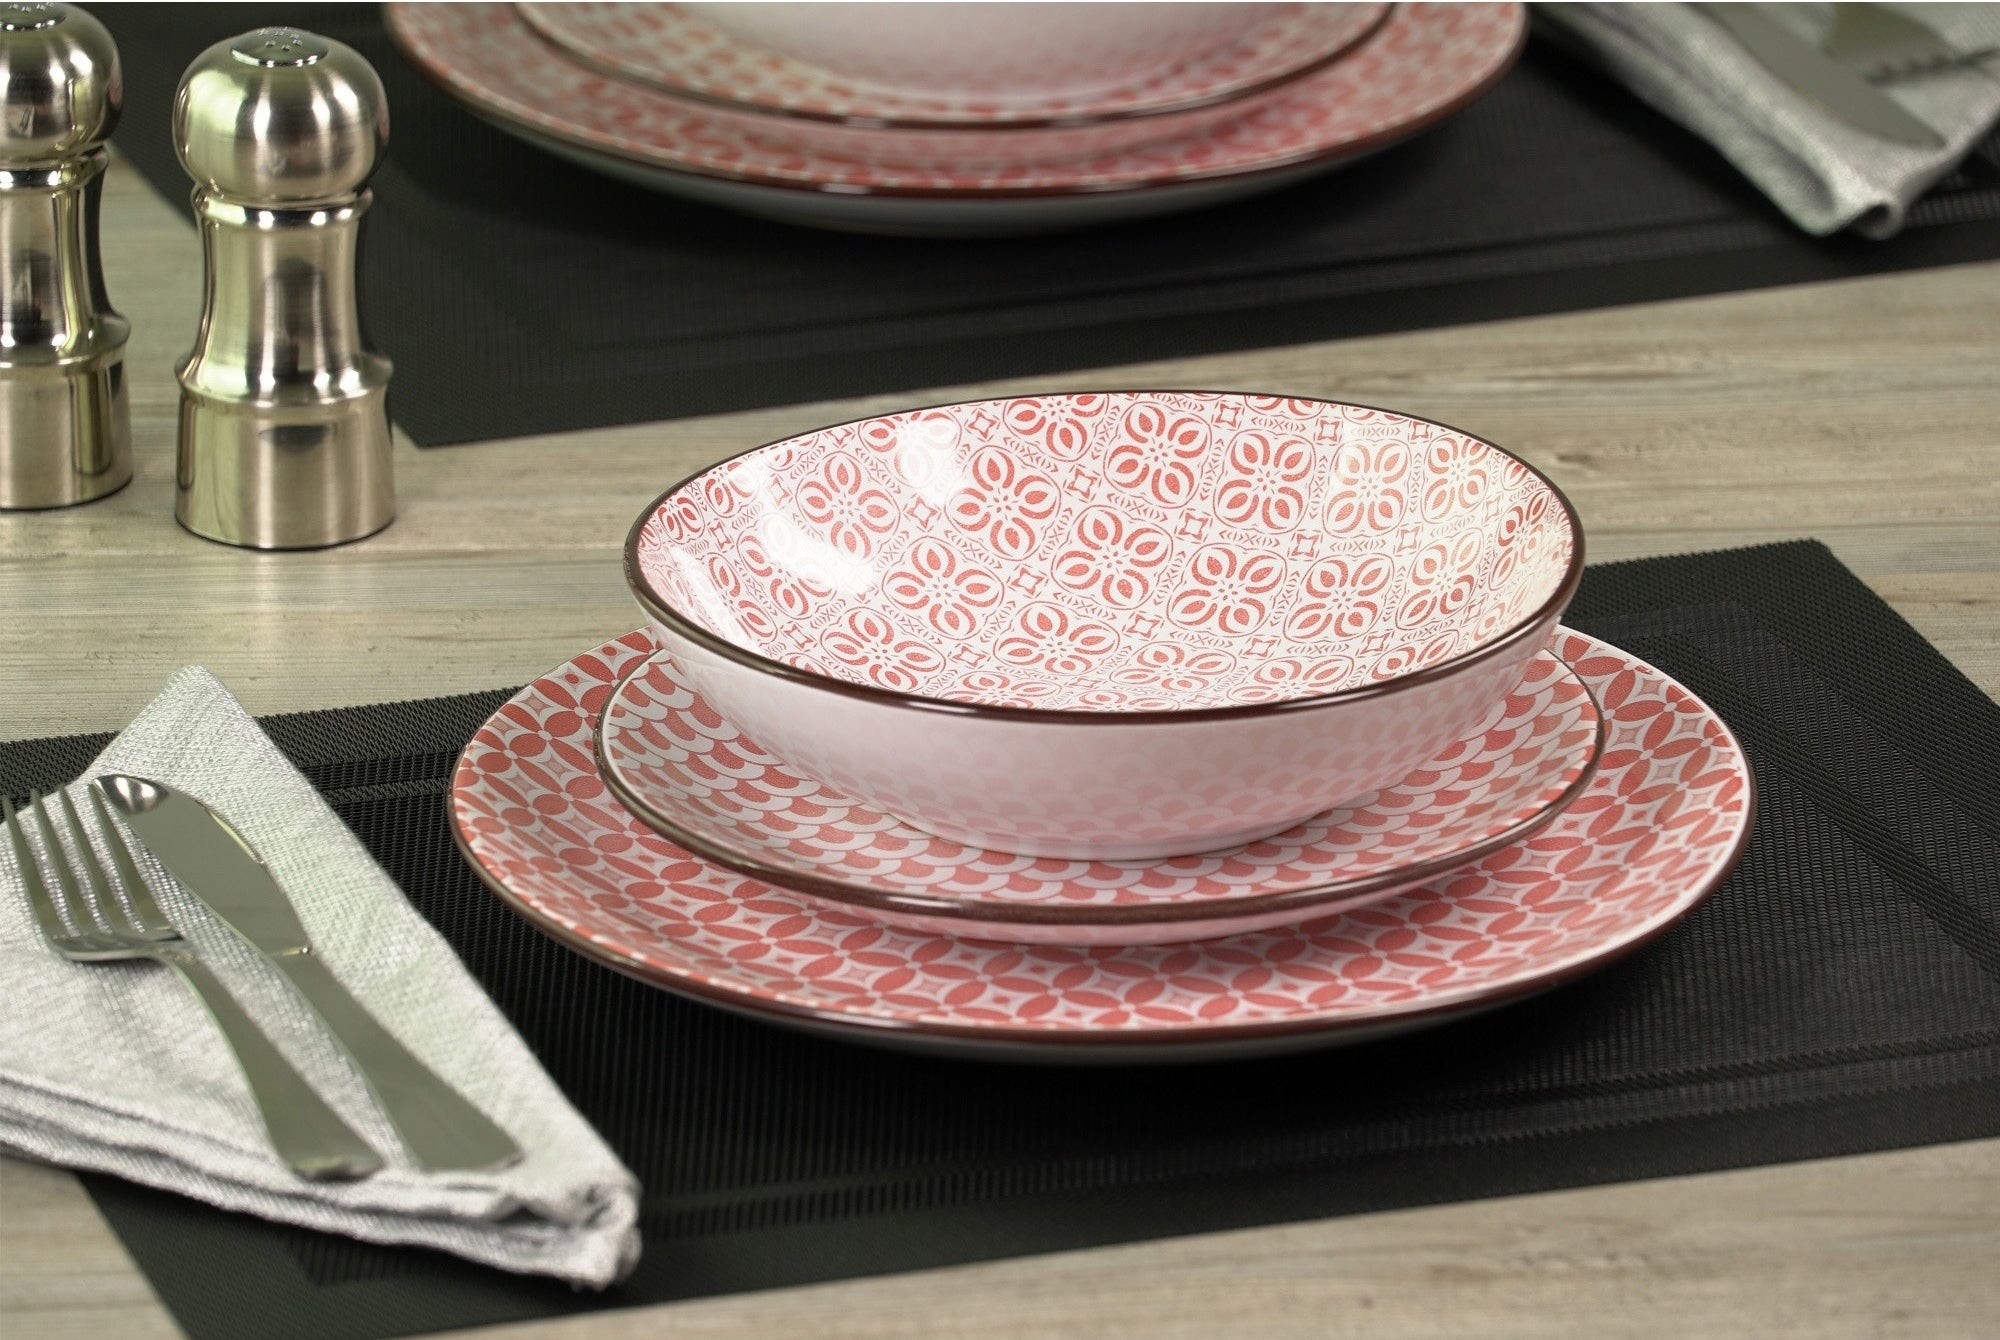 A ping and white patterned dish set of a plate, a smaller plate, and a bowl